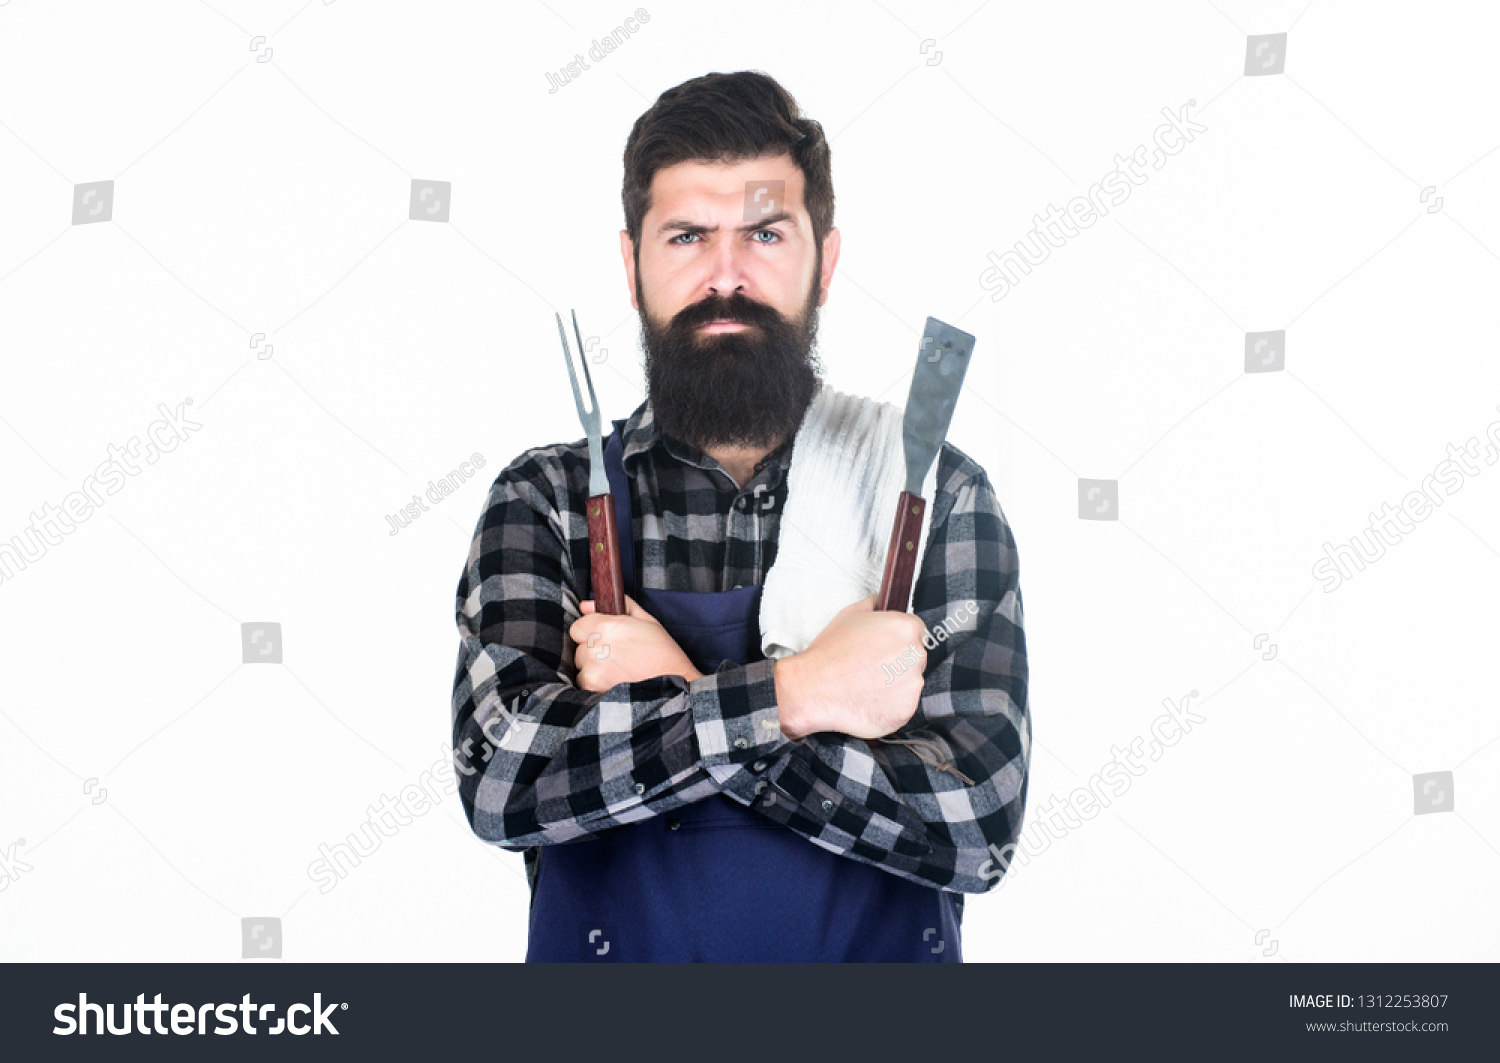 Roasting and grilling food. Man hold cooking utensils barbecue. Tools for roasting meat outdoors. Picnic and barbecue. Cooking meat in park. Masculine hobby. Bearded hipster wear apron for barbecue. #1312253807